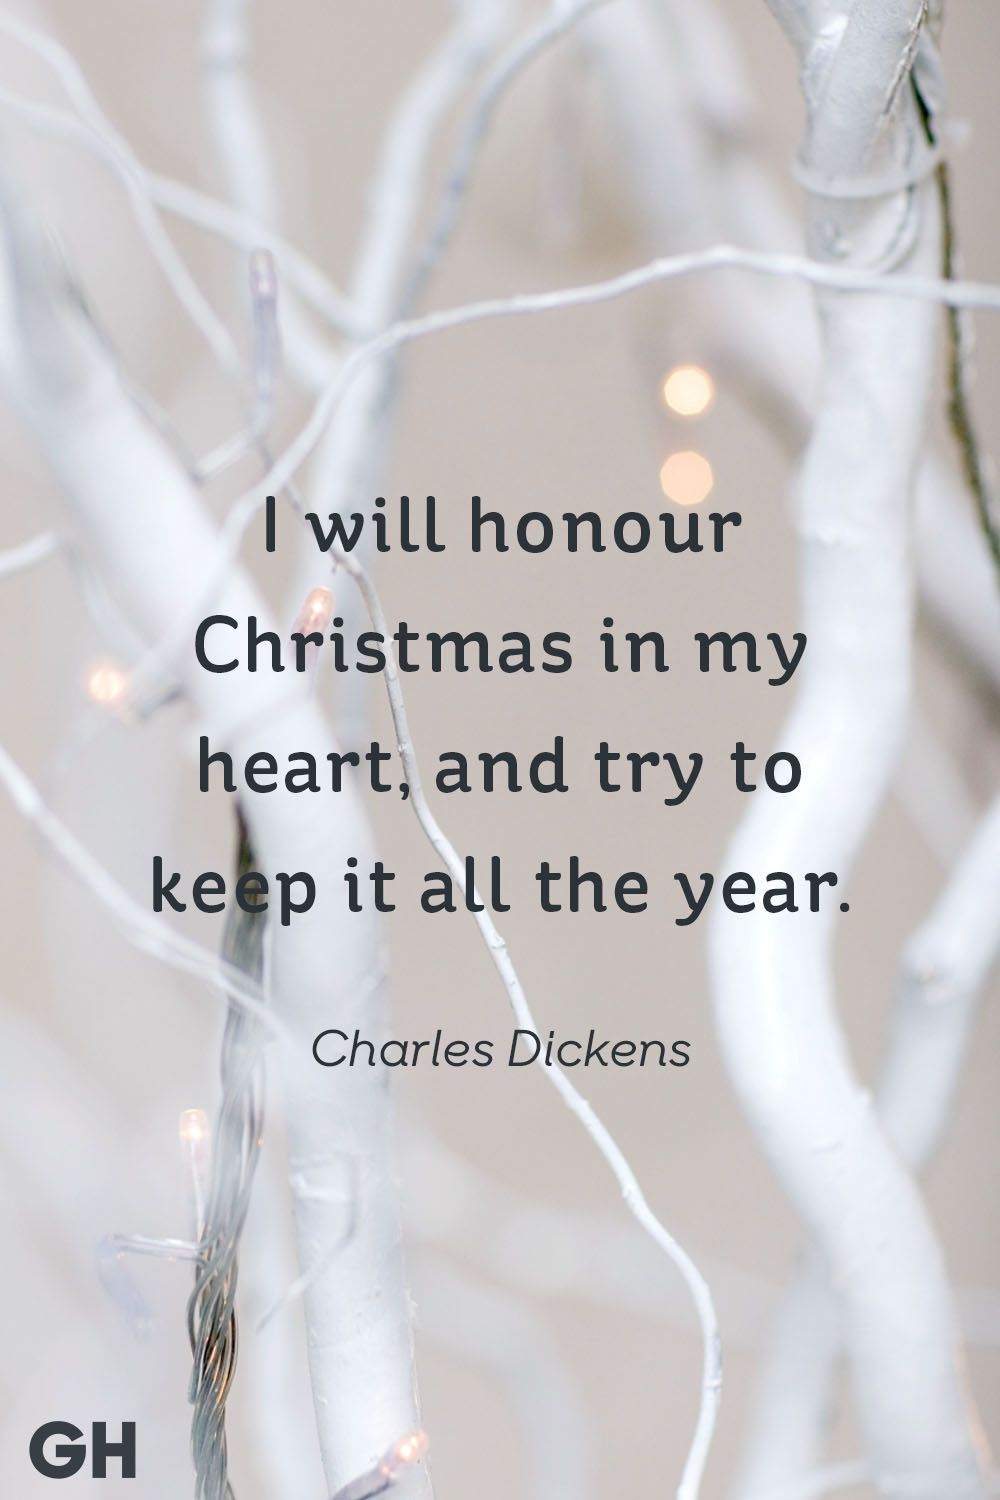 38 Best Christmas Quotes of All Time - Festive Holiday Sayings